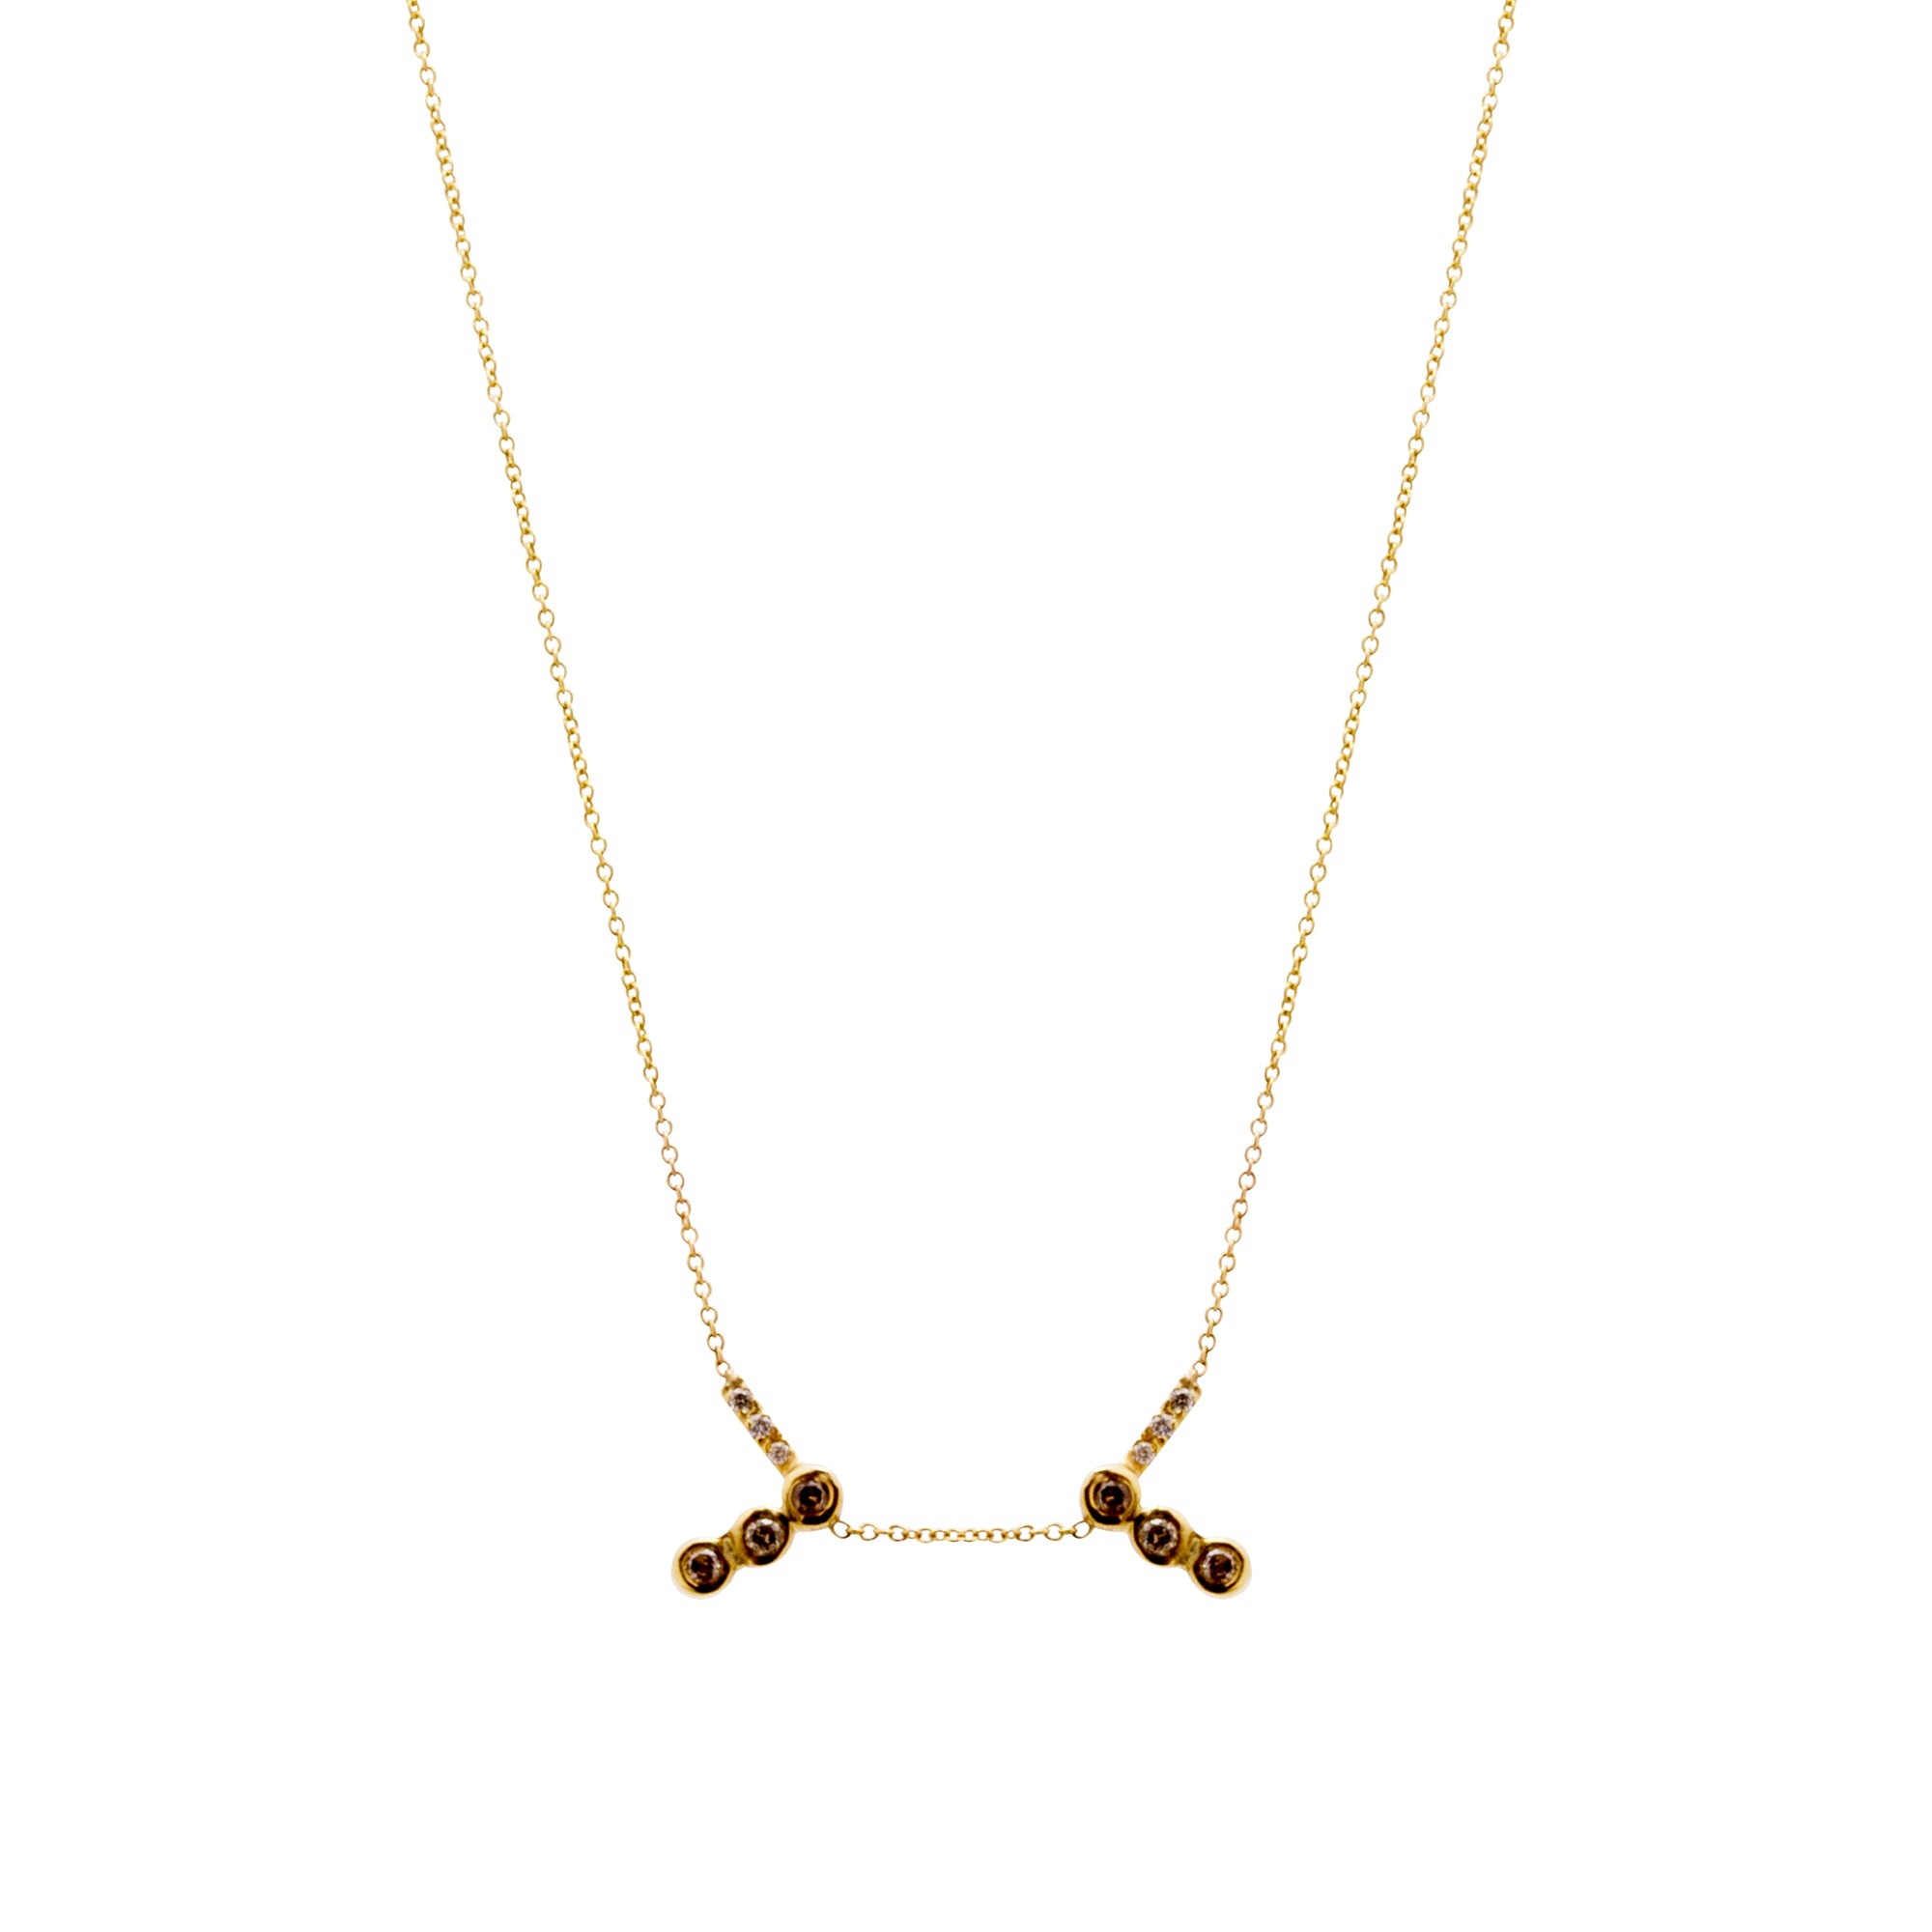 Gold Diamond Gravity Necklace by Xiao Wang for Broken English Jewelry